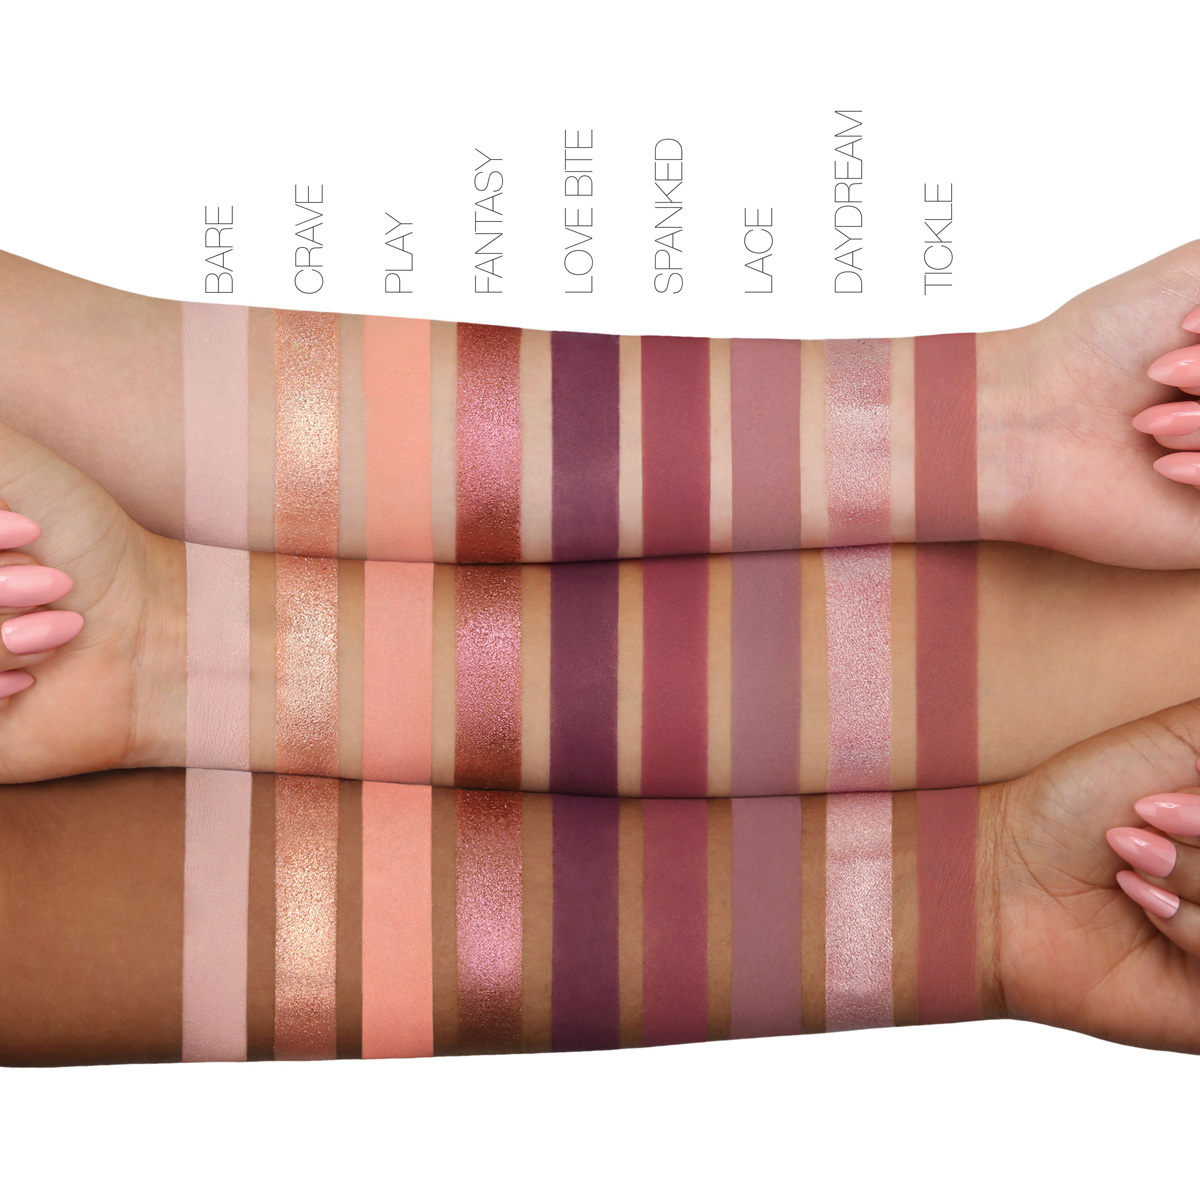 huda-beauty-the-new-nude-eyeshadow-palette-release-date-swatches-1